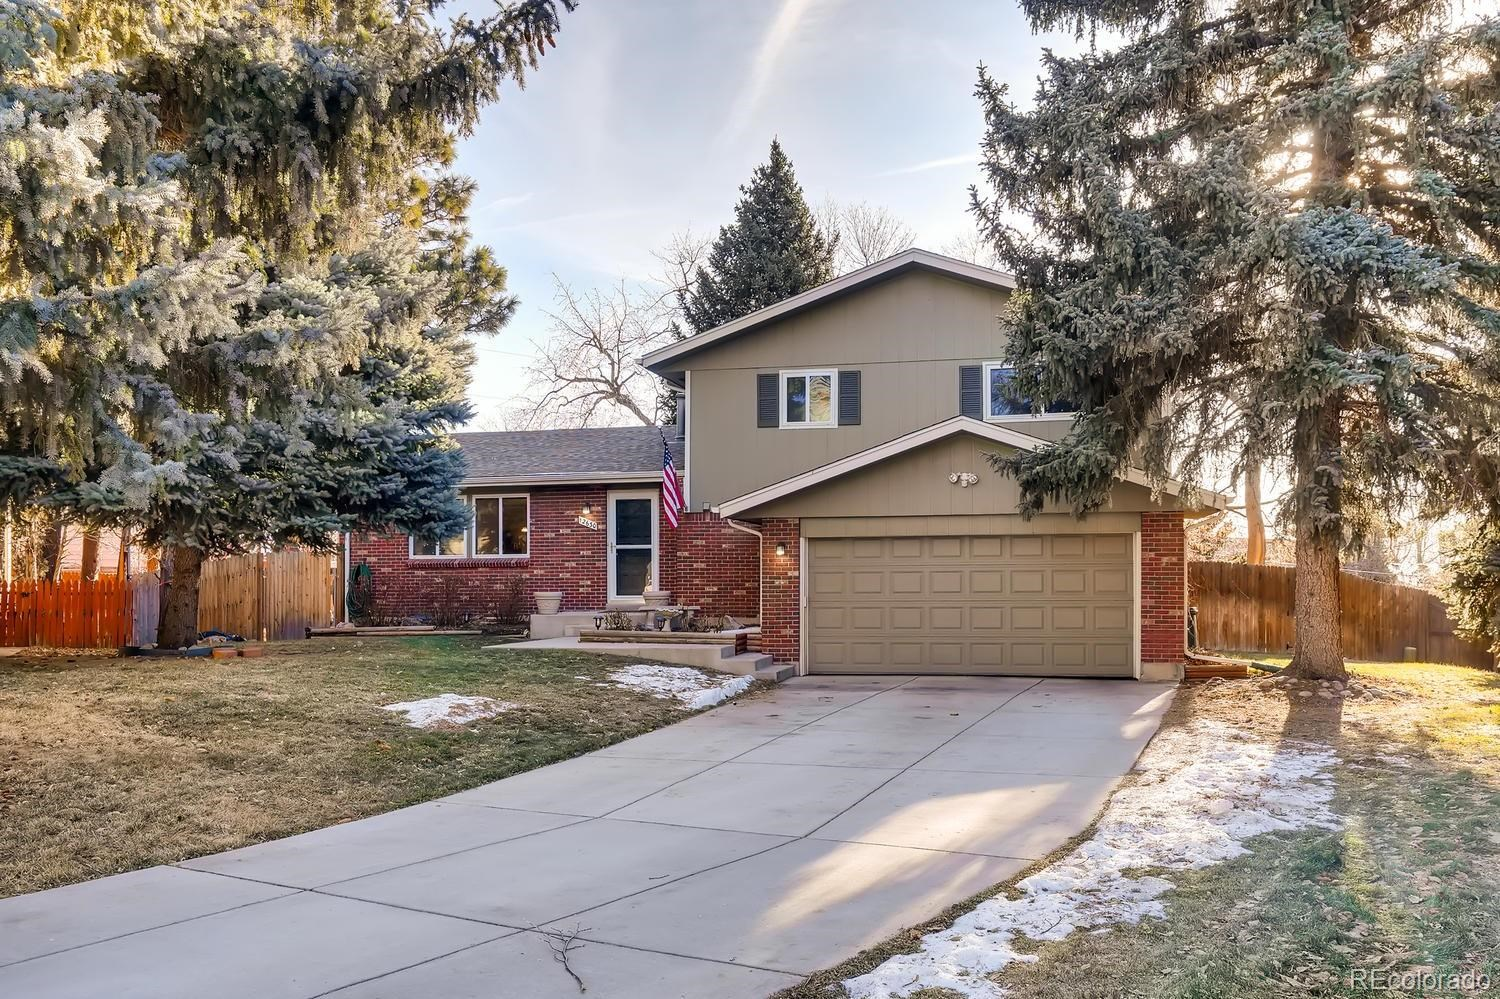 MLS# 8480812 - 2 - 12630 W 67th Place, Arvada, CO 80004